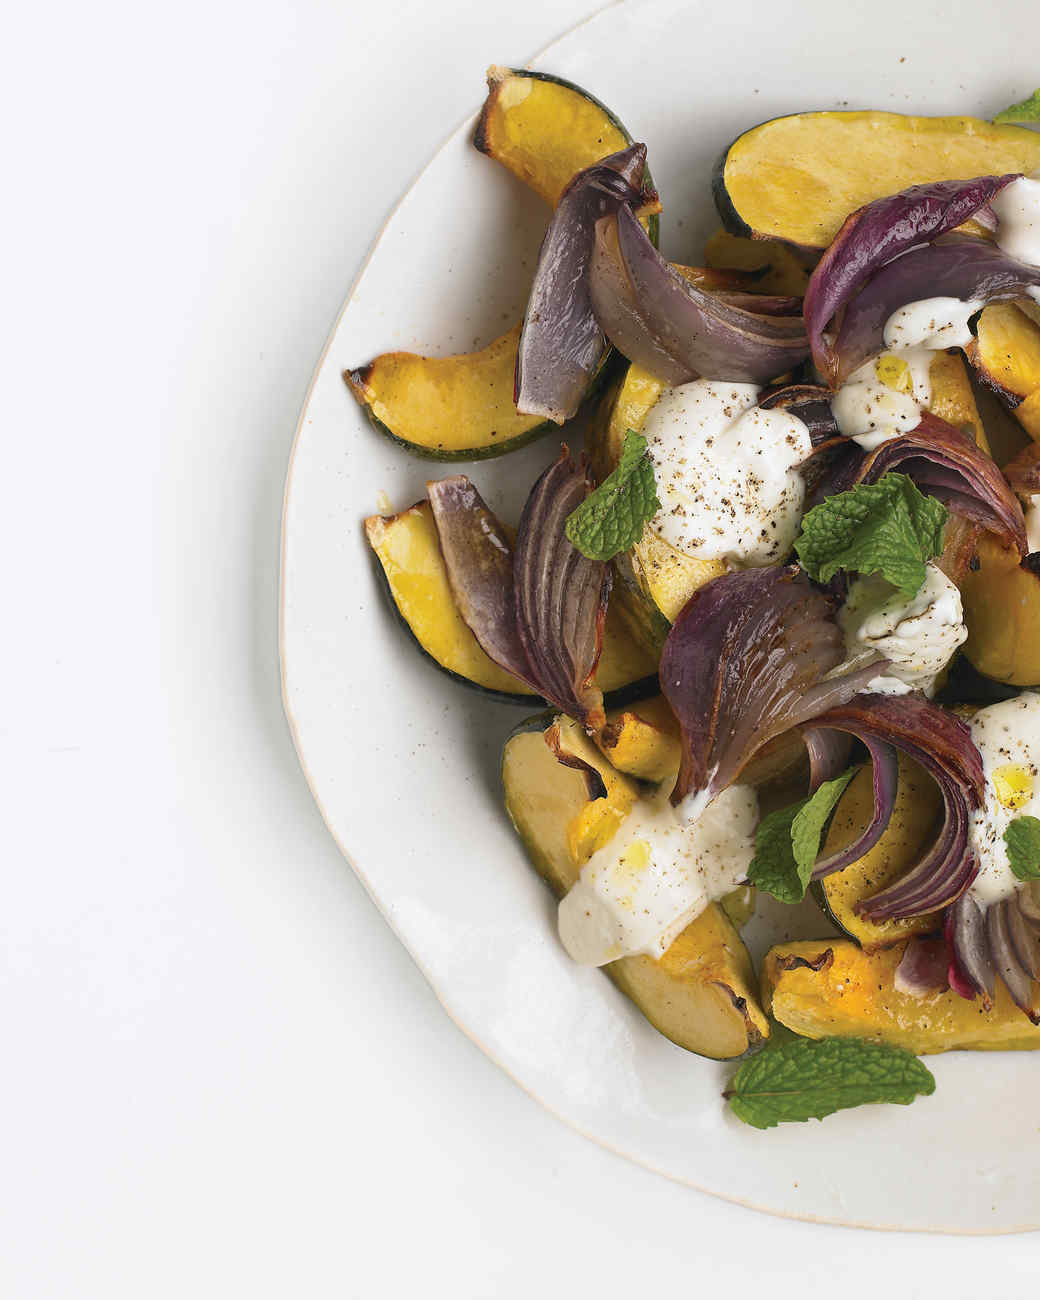 Roasted Squash with Onions and Yogurt